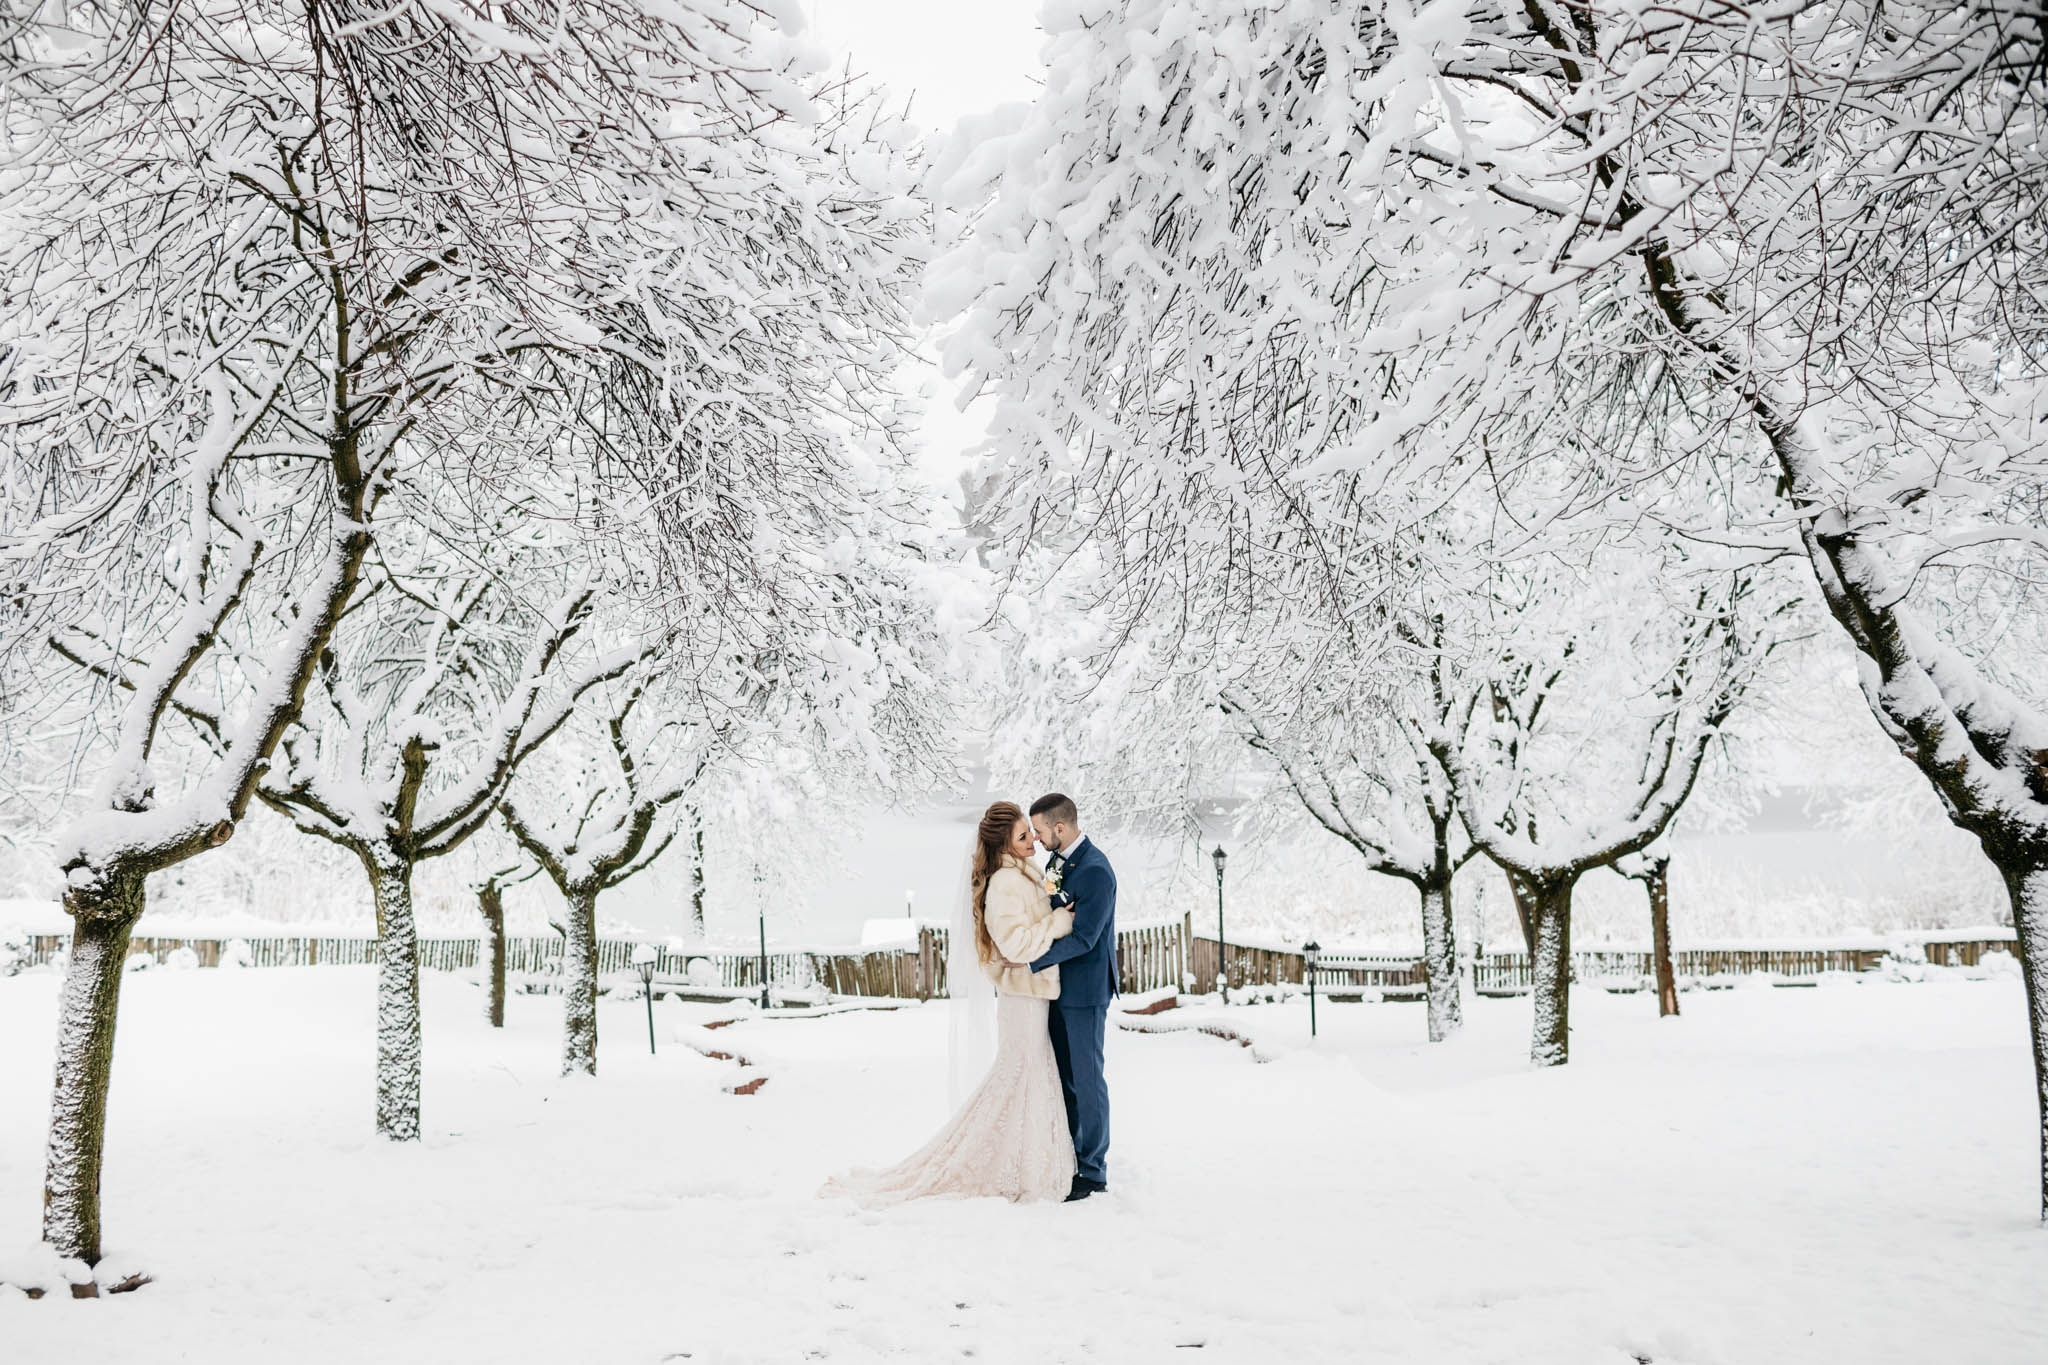 8 Reasons to Consider a Winter Wedding